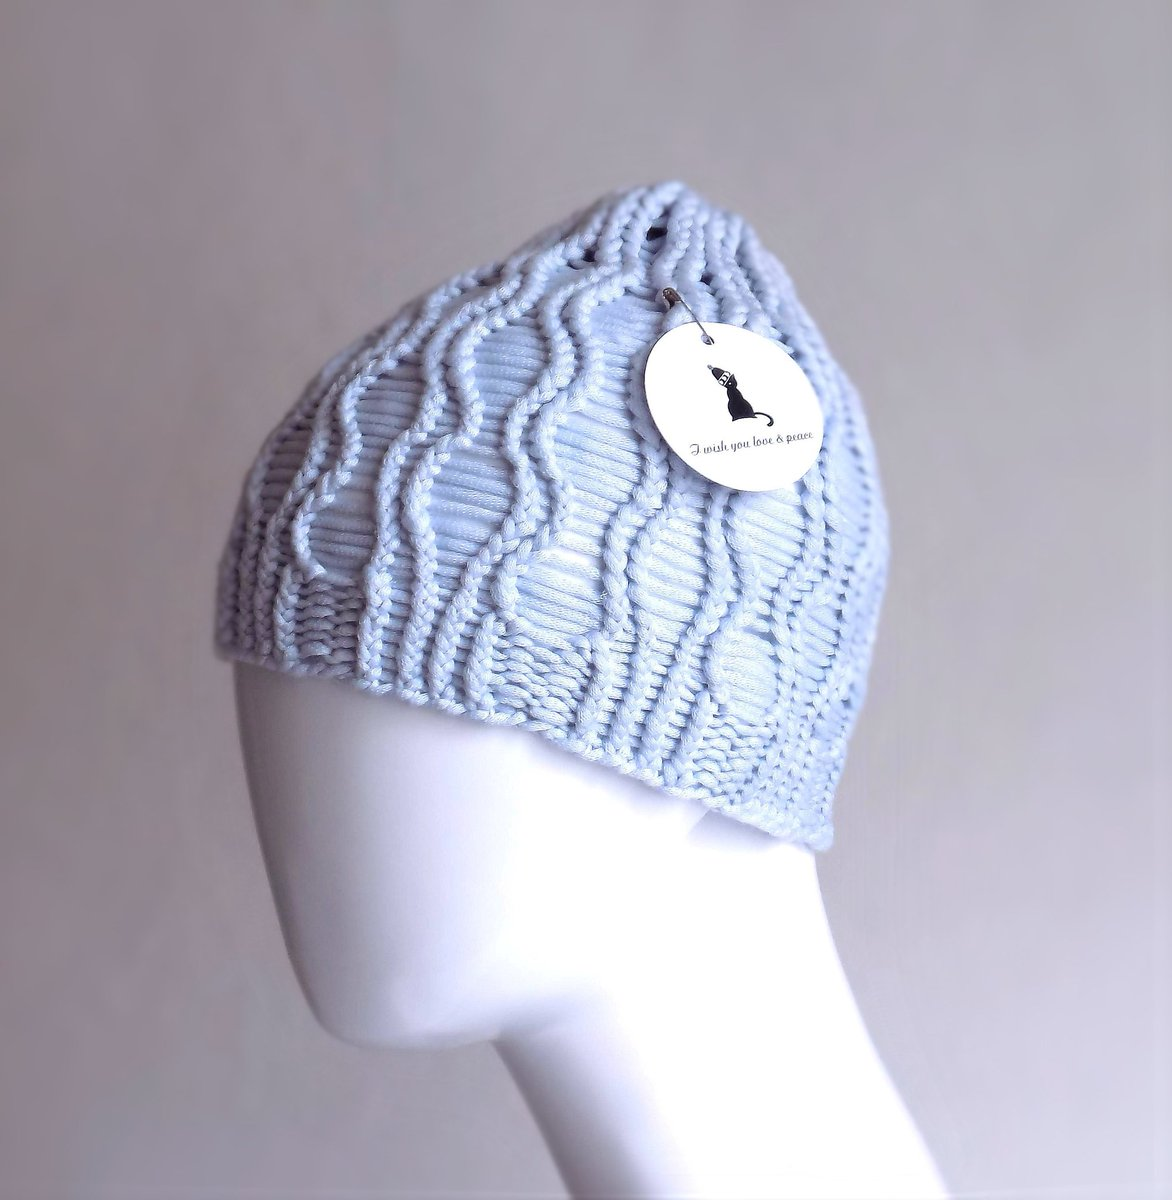 5d4f003cf60 Soft and gentle knit skull cap for women. Women  39 s hipster beanie  https   etsy.me 2EQGIL5 pic.twitter.com vSVEl8ZLBc